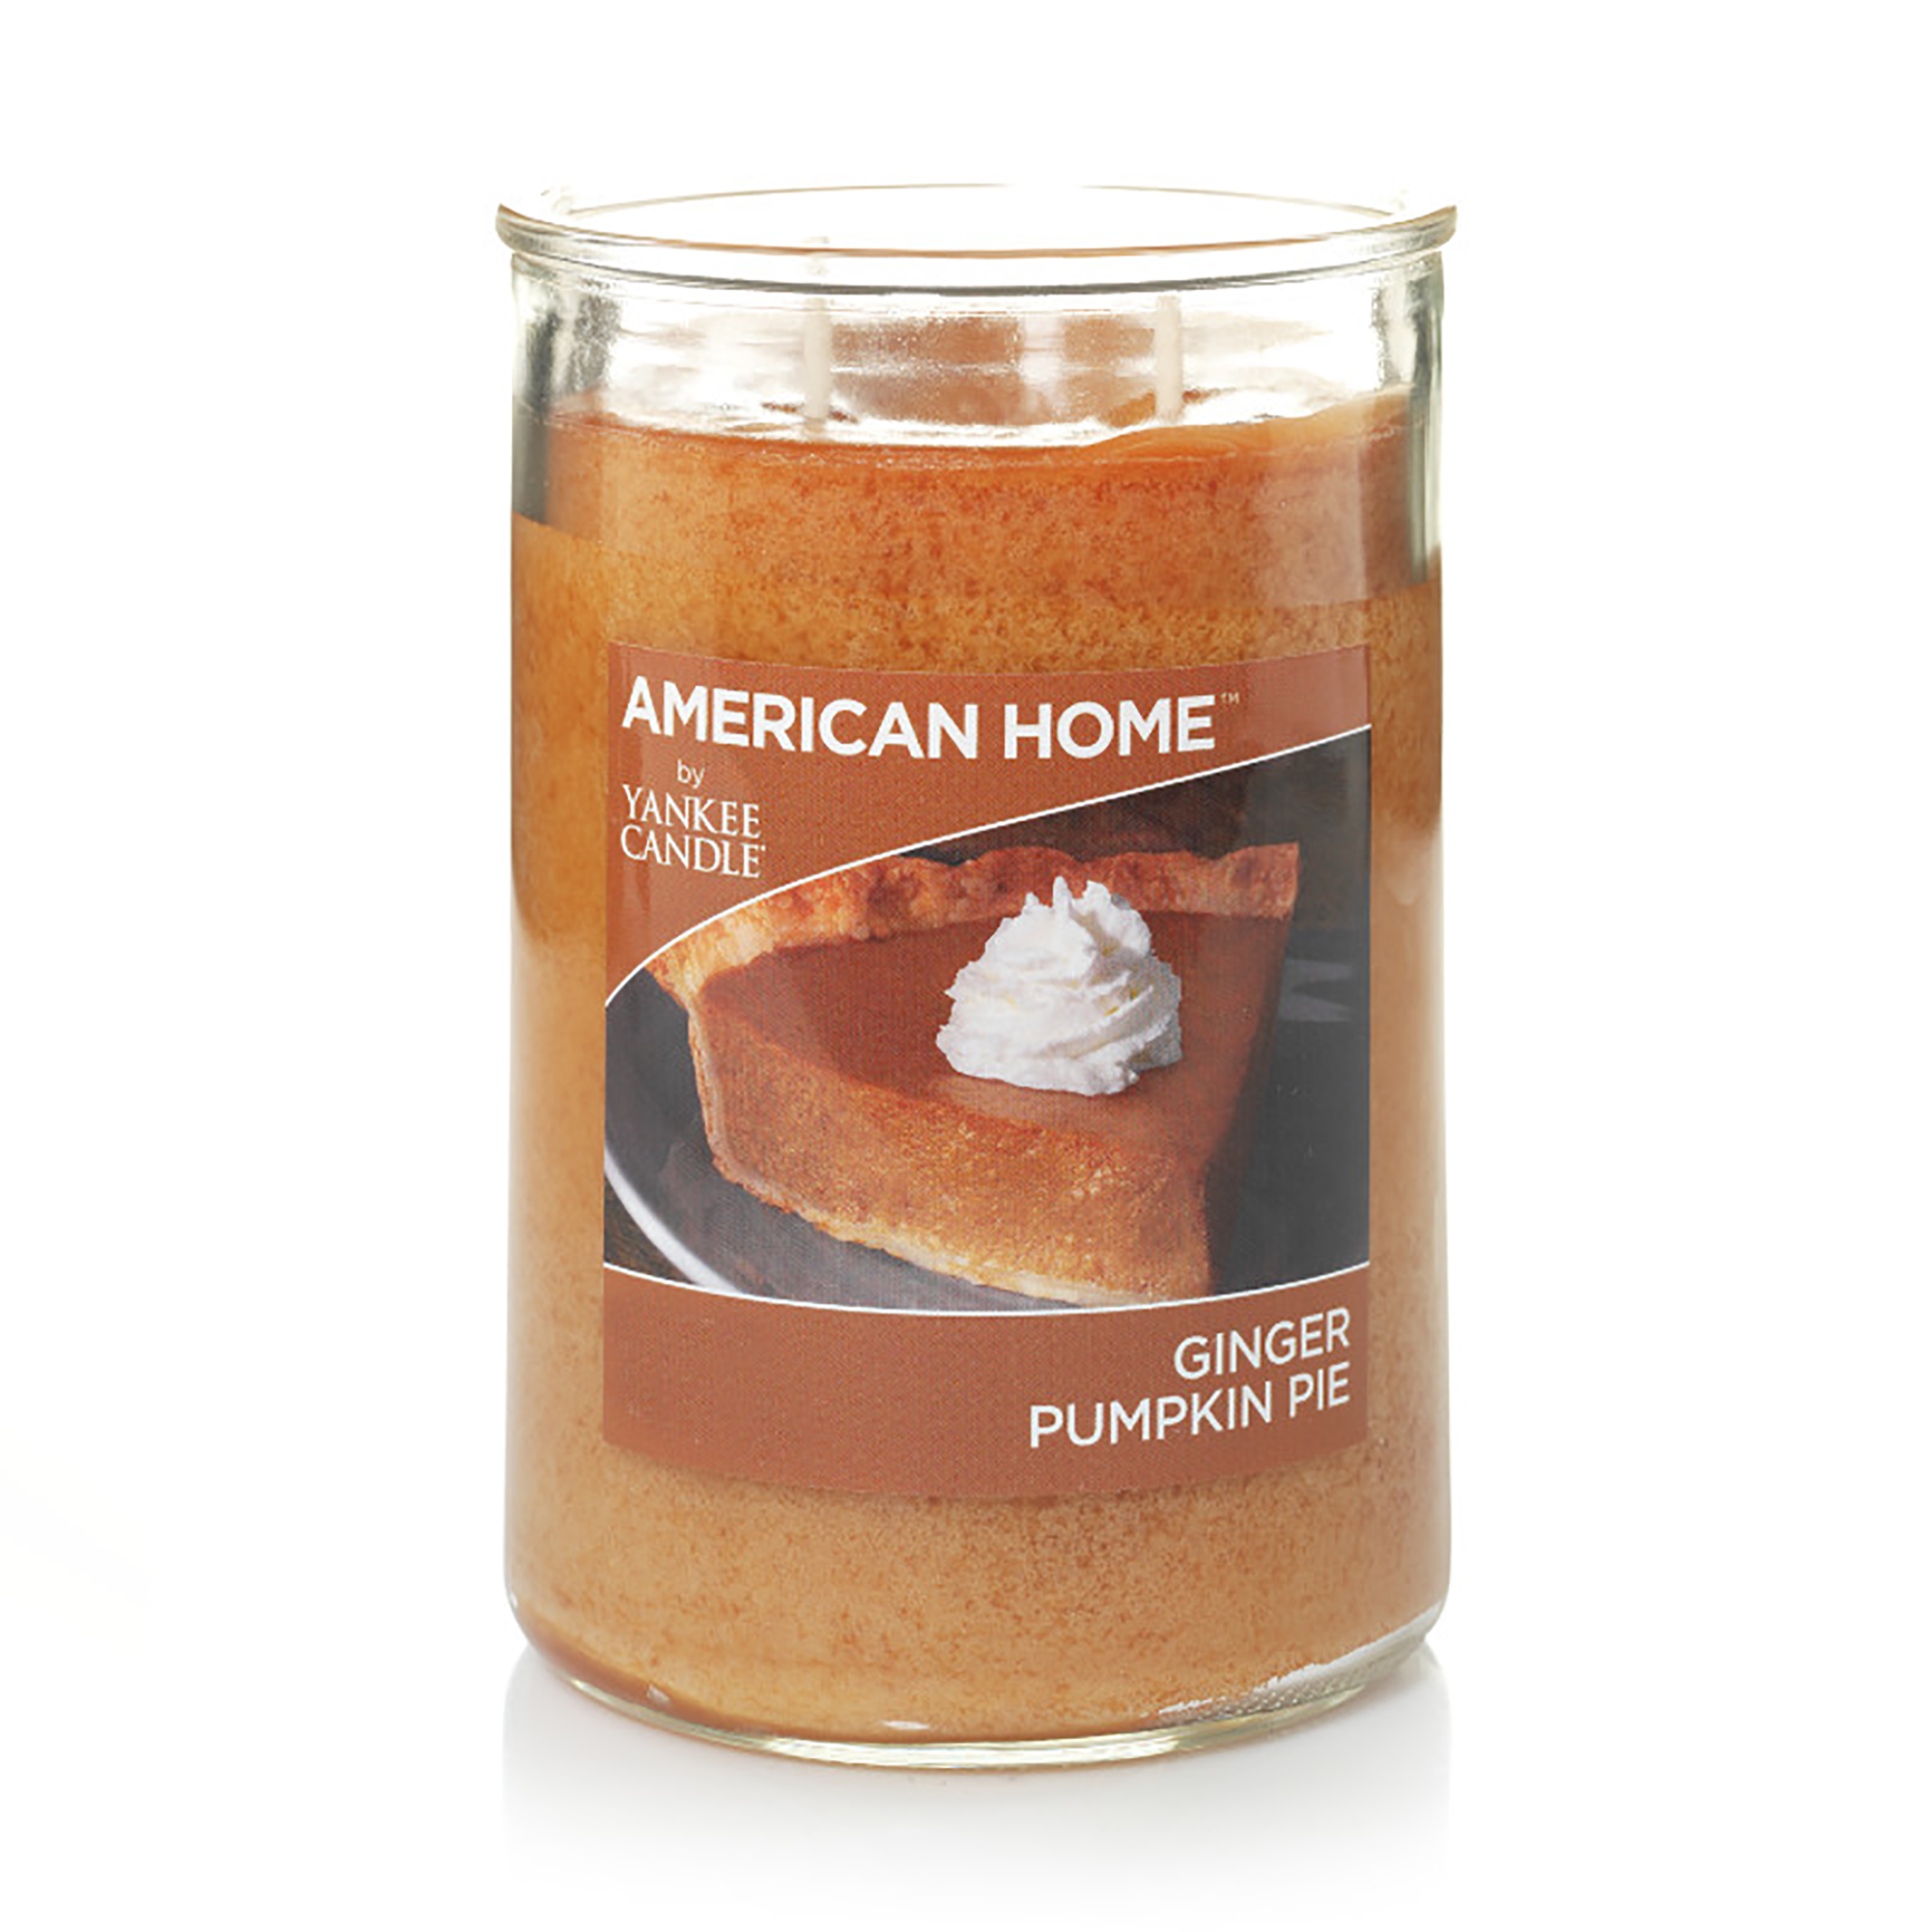 American Home by Yankee Candle Ginger Pumpkin Pie, 19 oz Large 2-Wick Tumbler